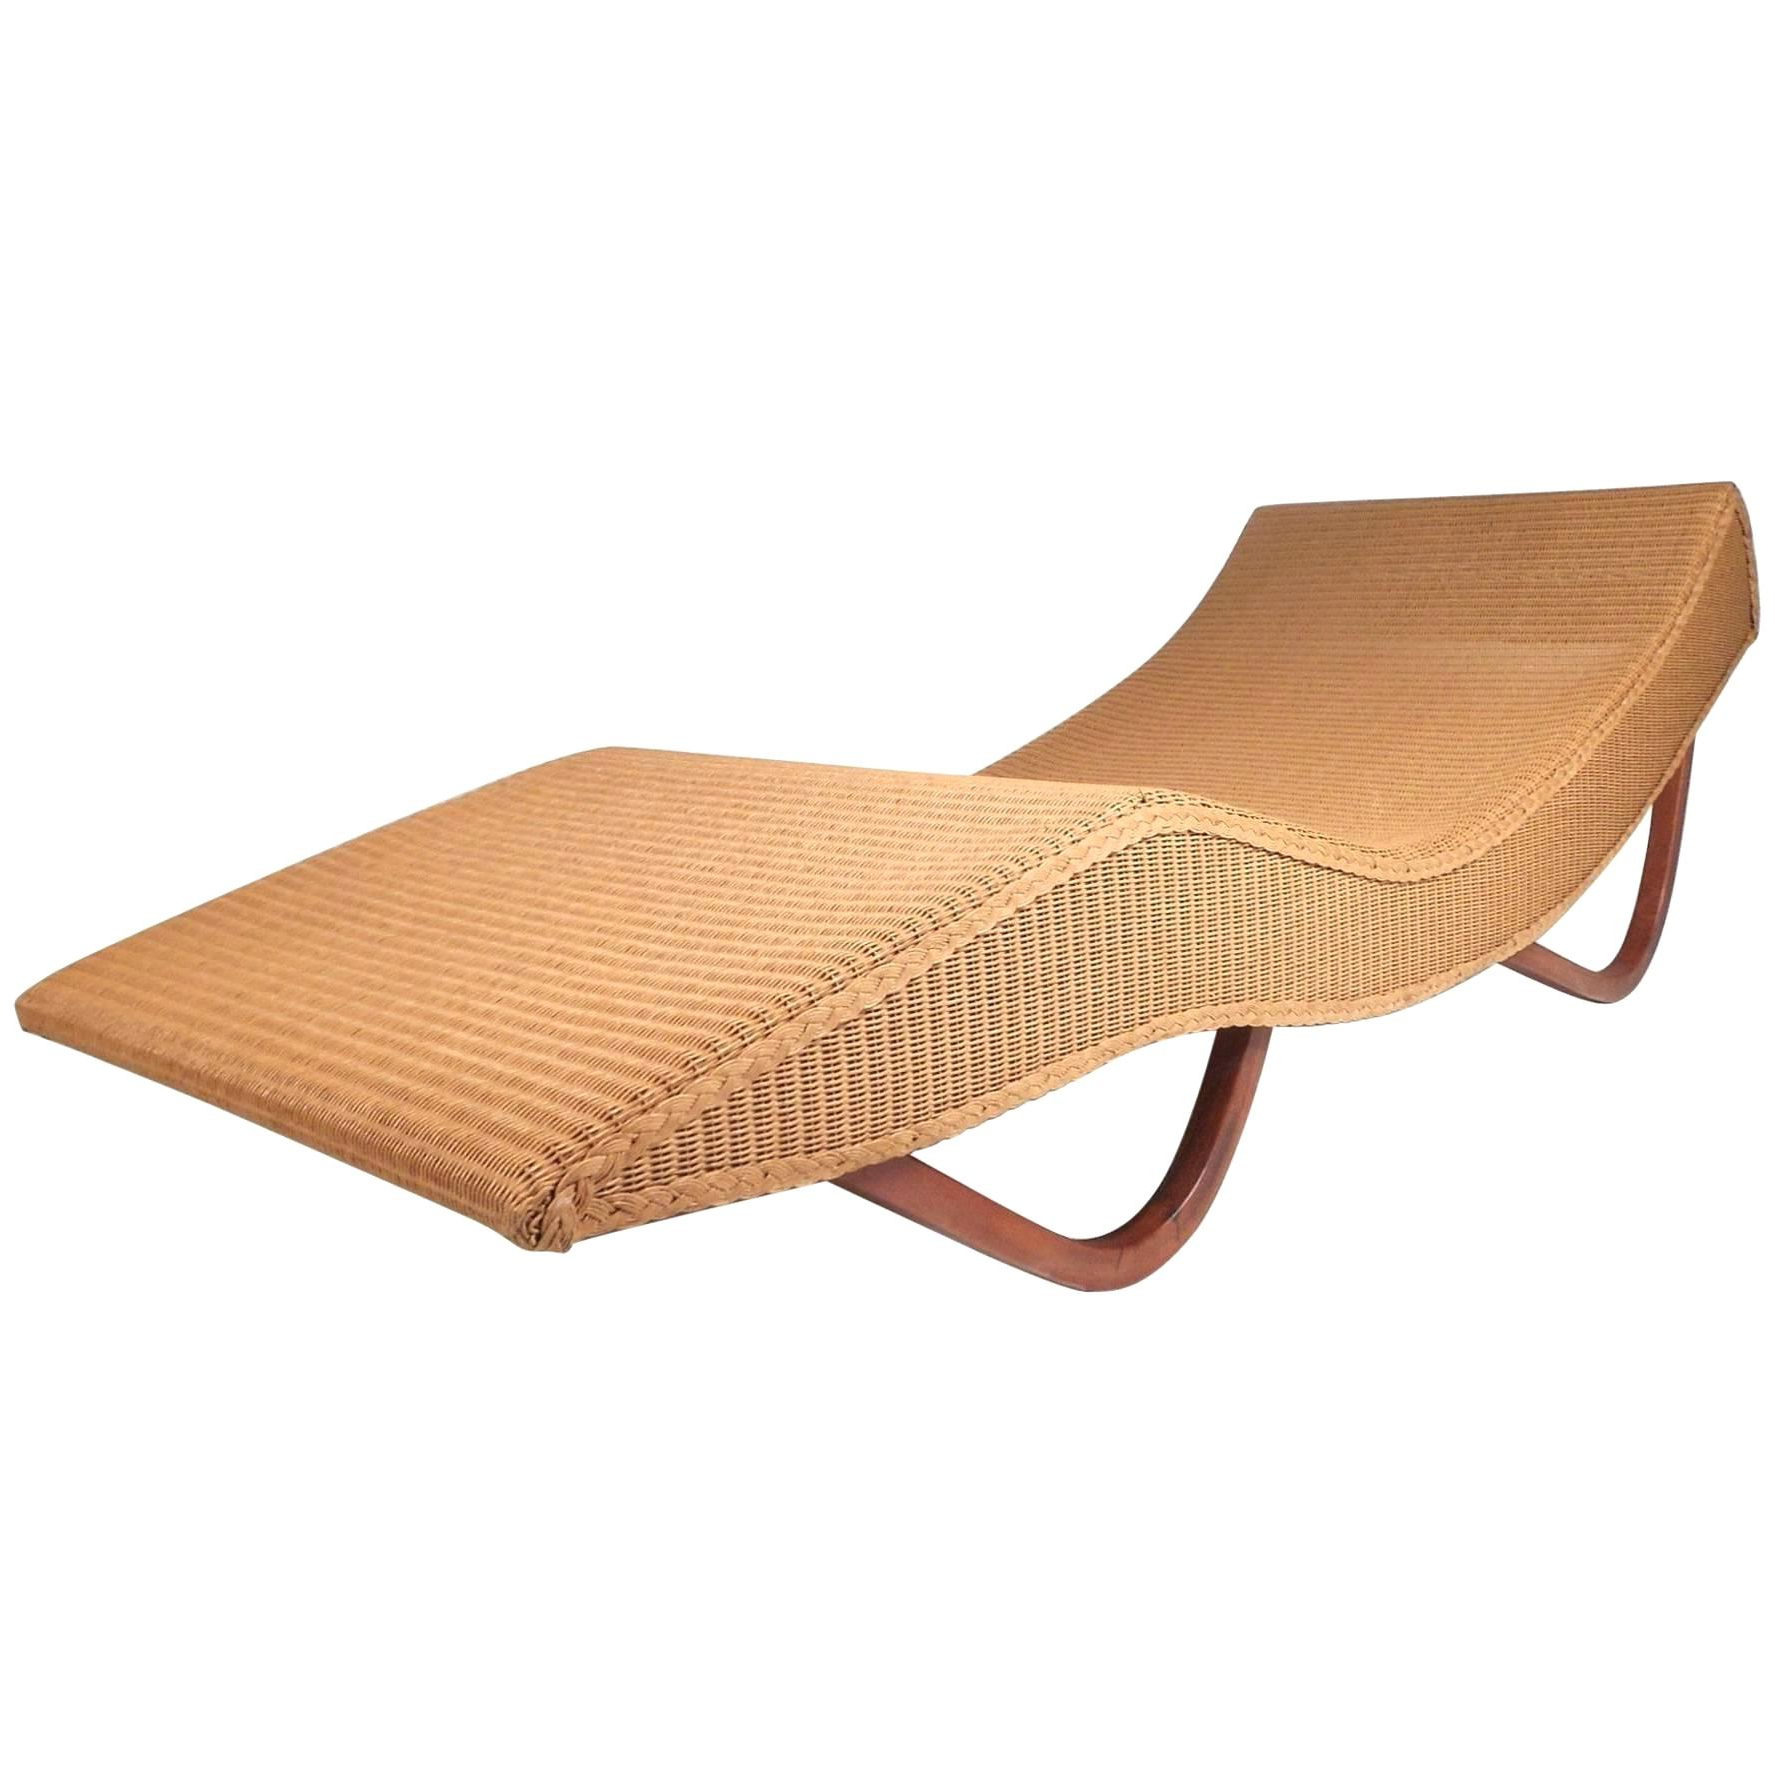 Most Current Kauai Outdoor Wicker Chaise Lounges Inside Loom Wicker Chaise For Sale Lounge With Arms Id F (Gallery 12 of 25)